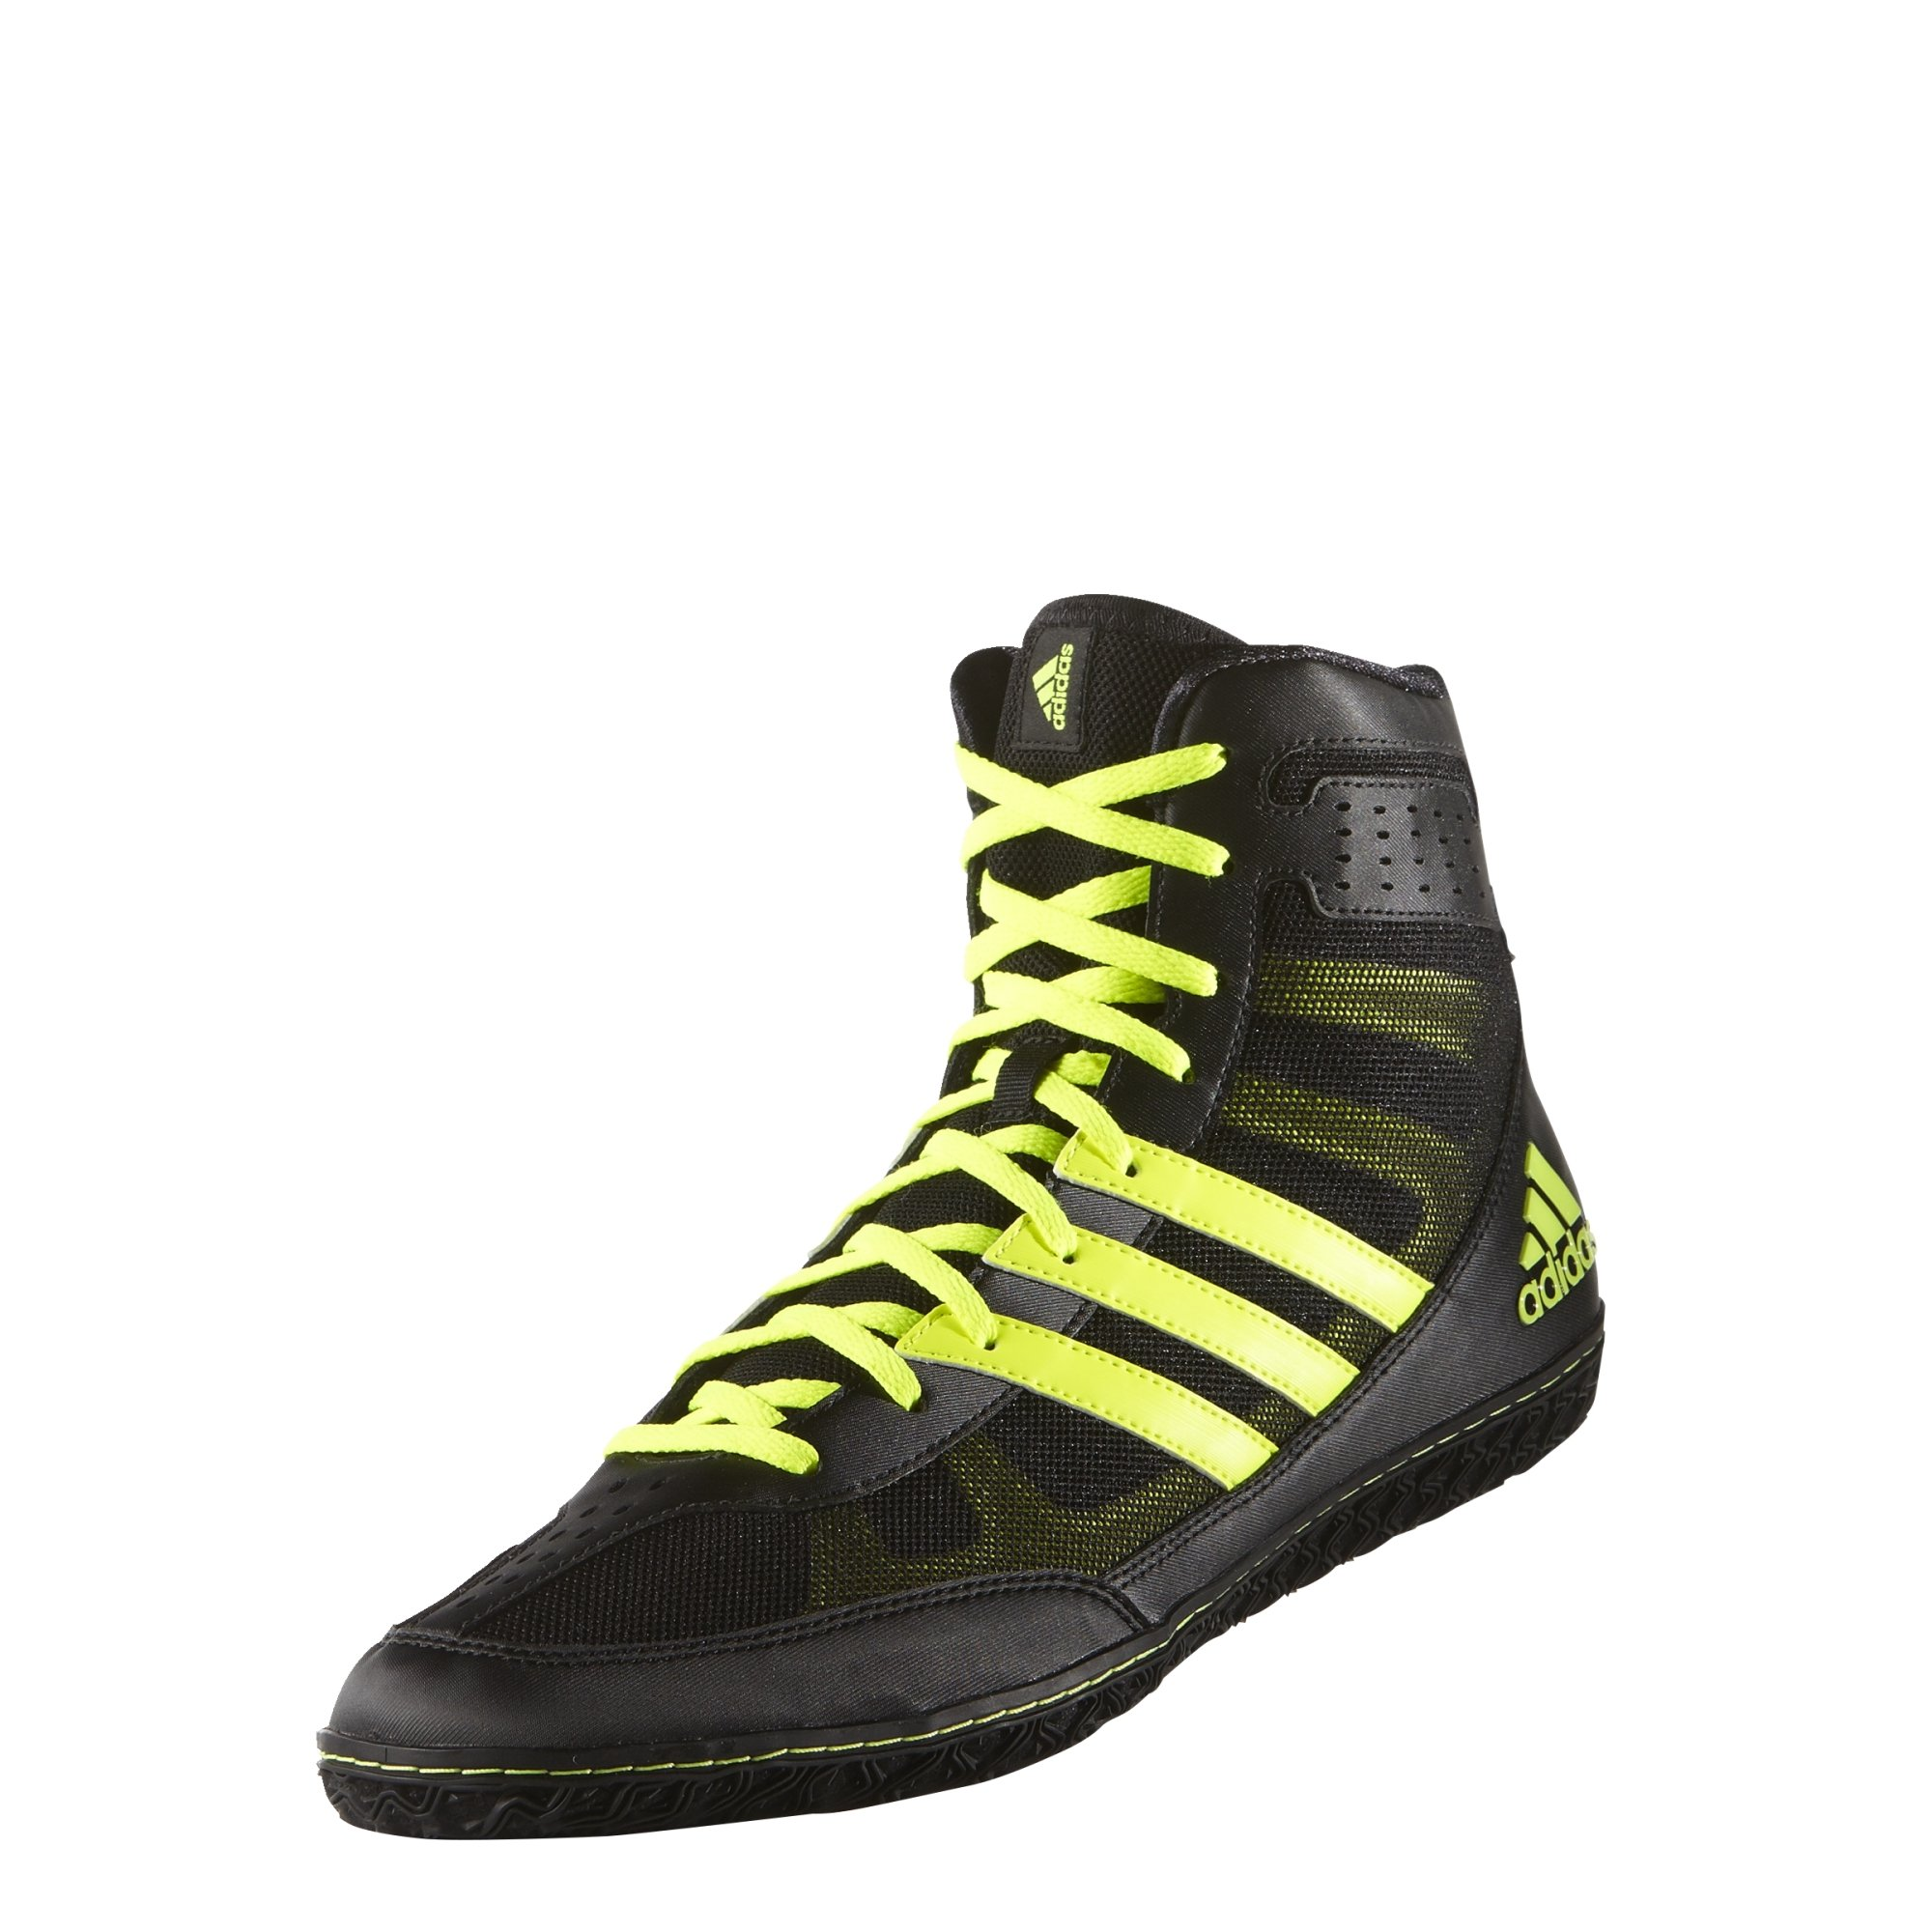 Adidas Mat Wizard David Taylor Edition Wrestling Shoes Black/Solar Yellow Size 10.5